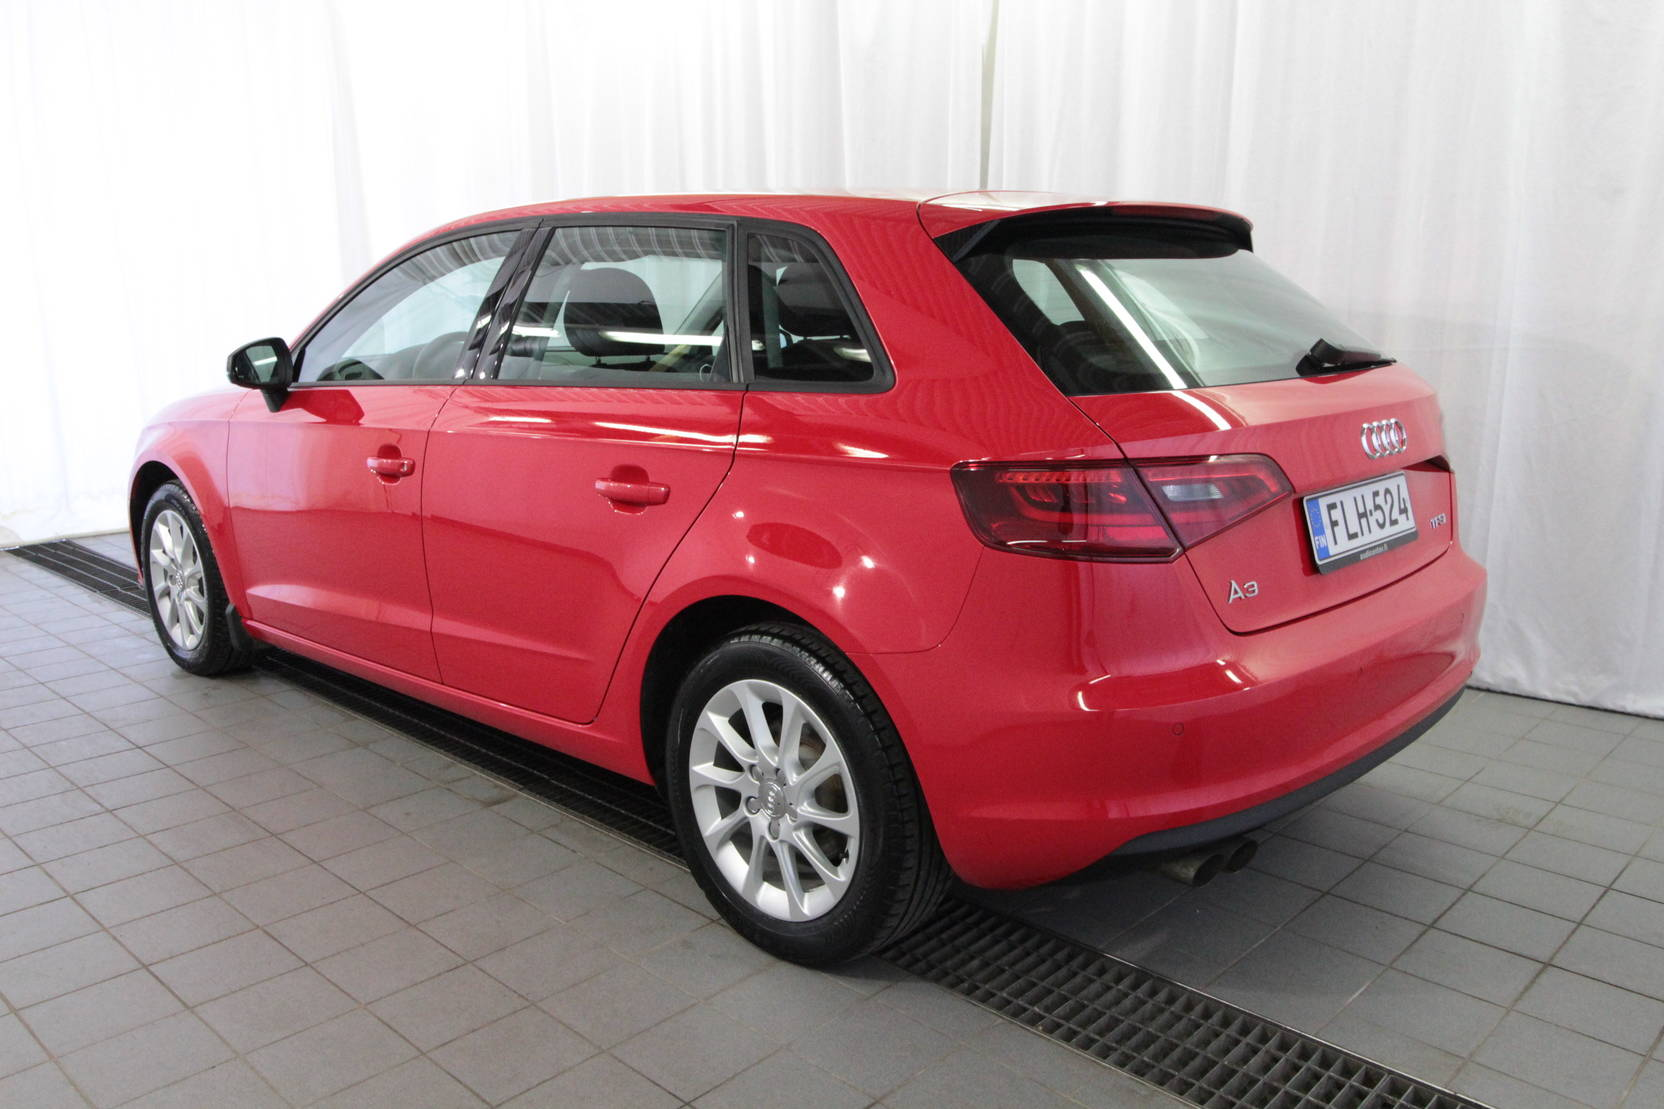 Audi A3 Sb Business 1.4 Tfsi 90 Kw detail2